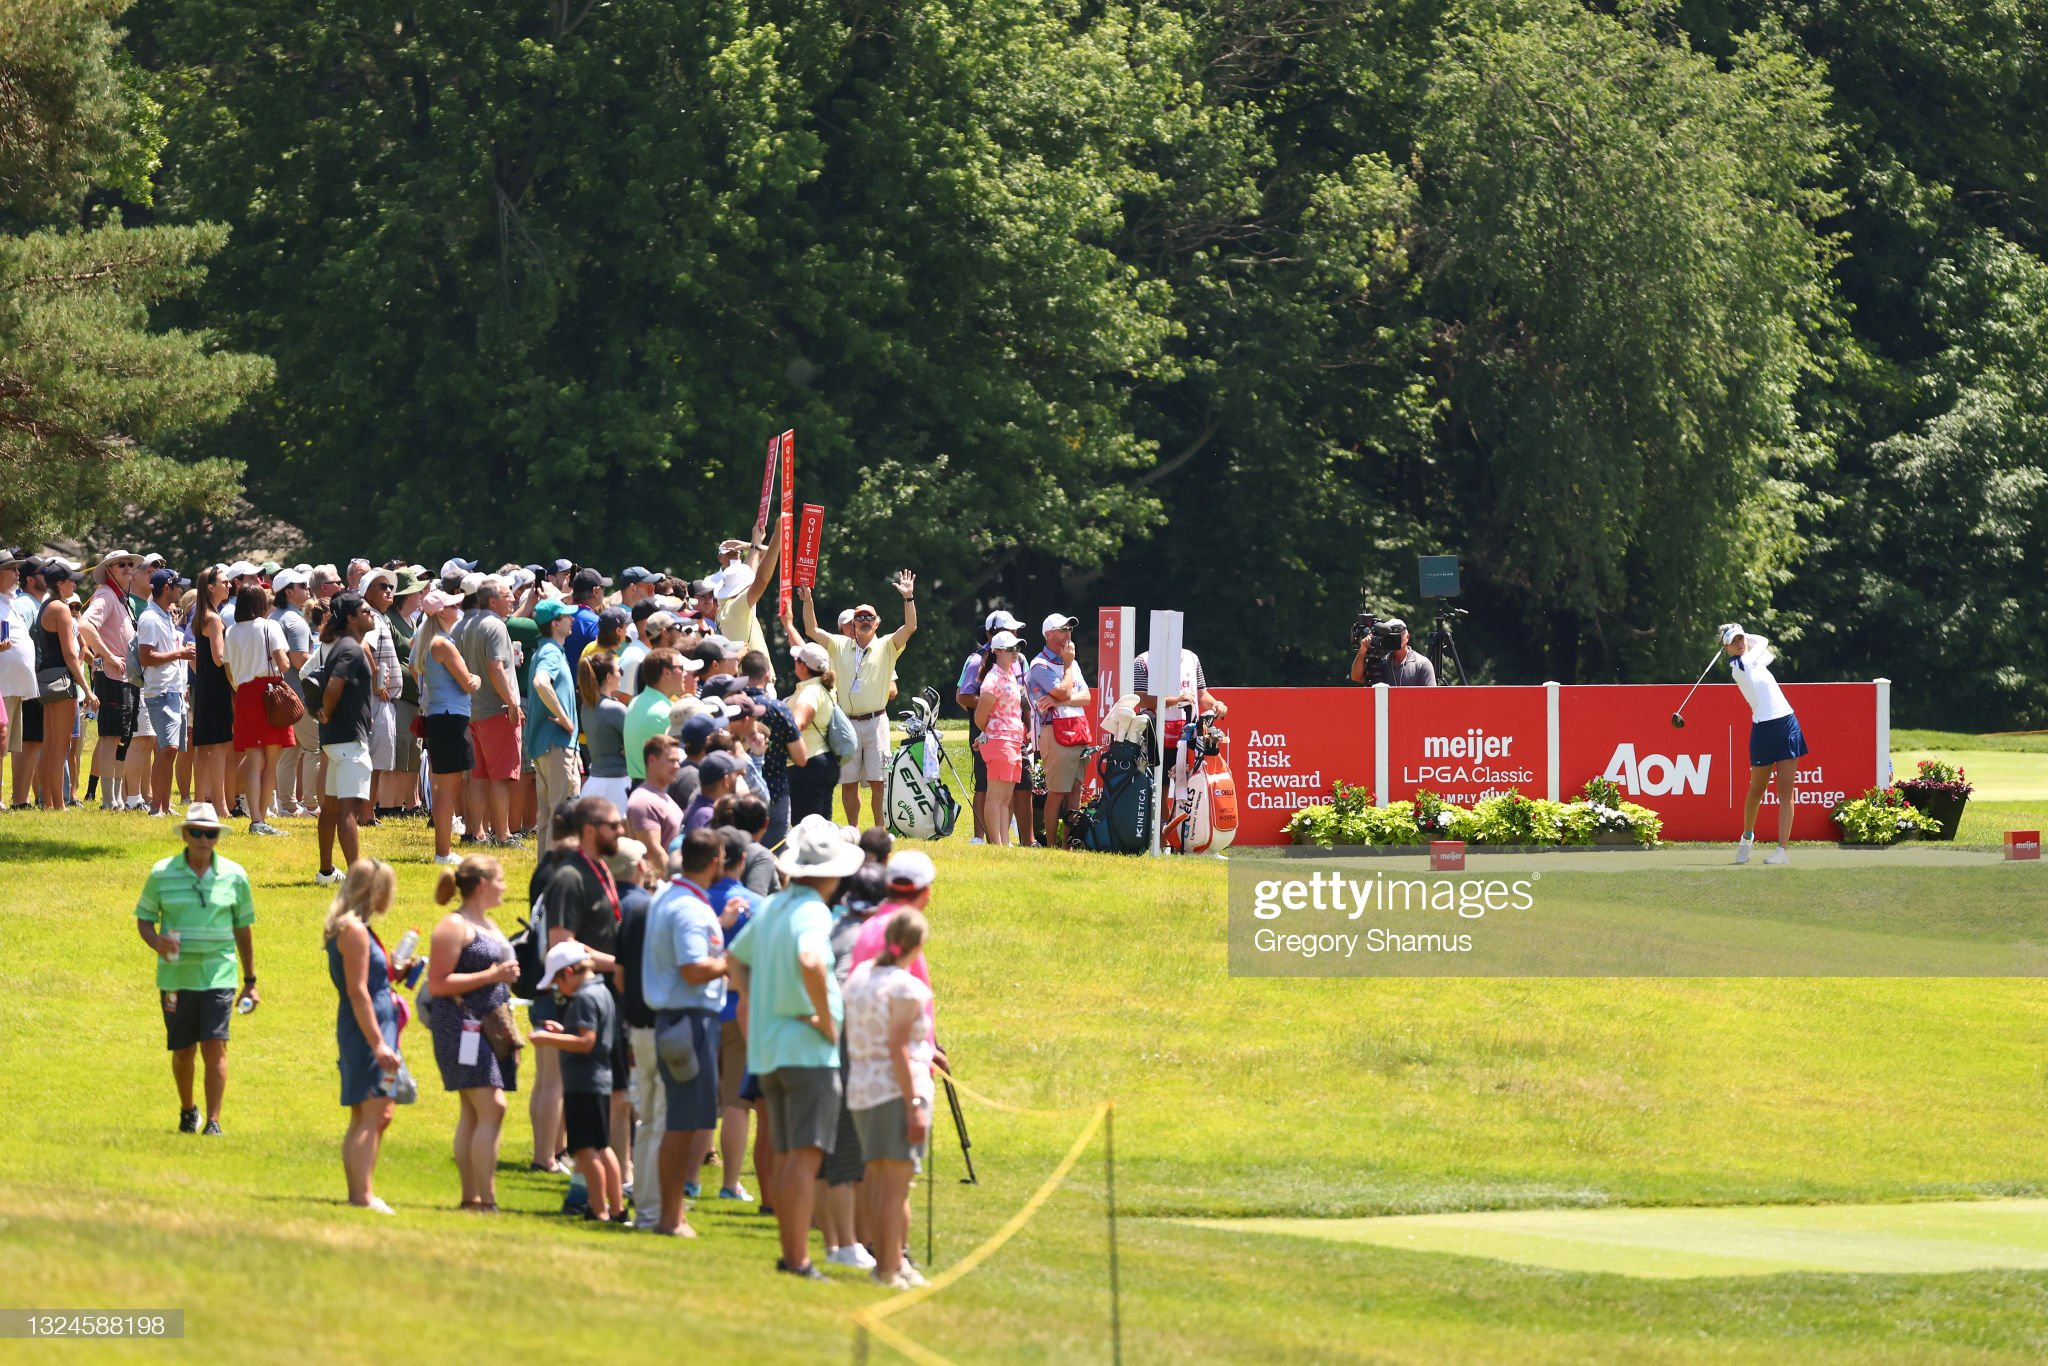 https://media.gettyimages.com/photos/nelly-korda-hits-her-drive-on-the-14th-hole-during-the-final-round-of-picture-id1324588198?s=2048x2048